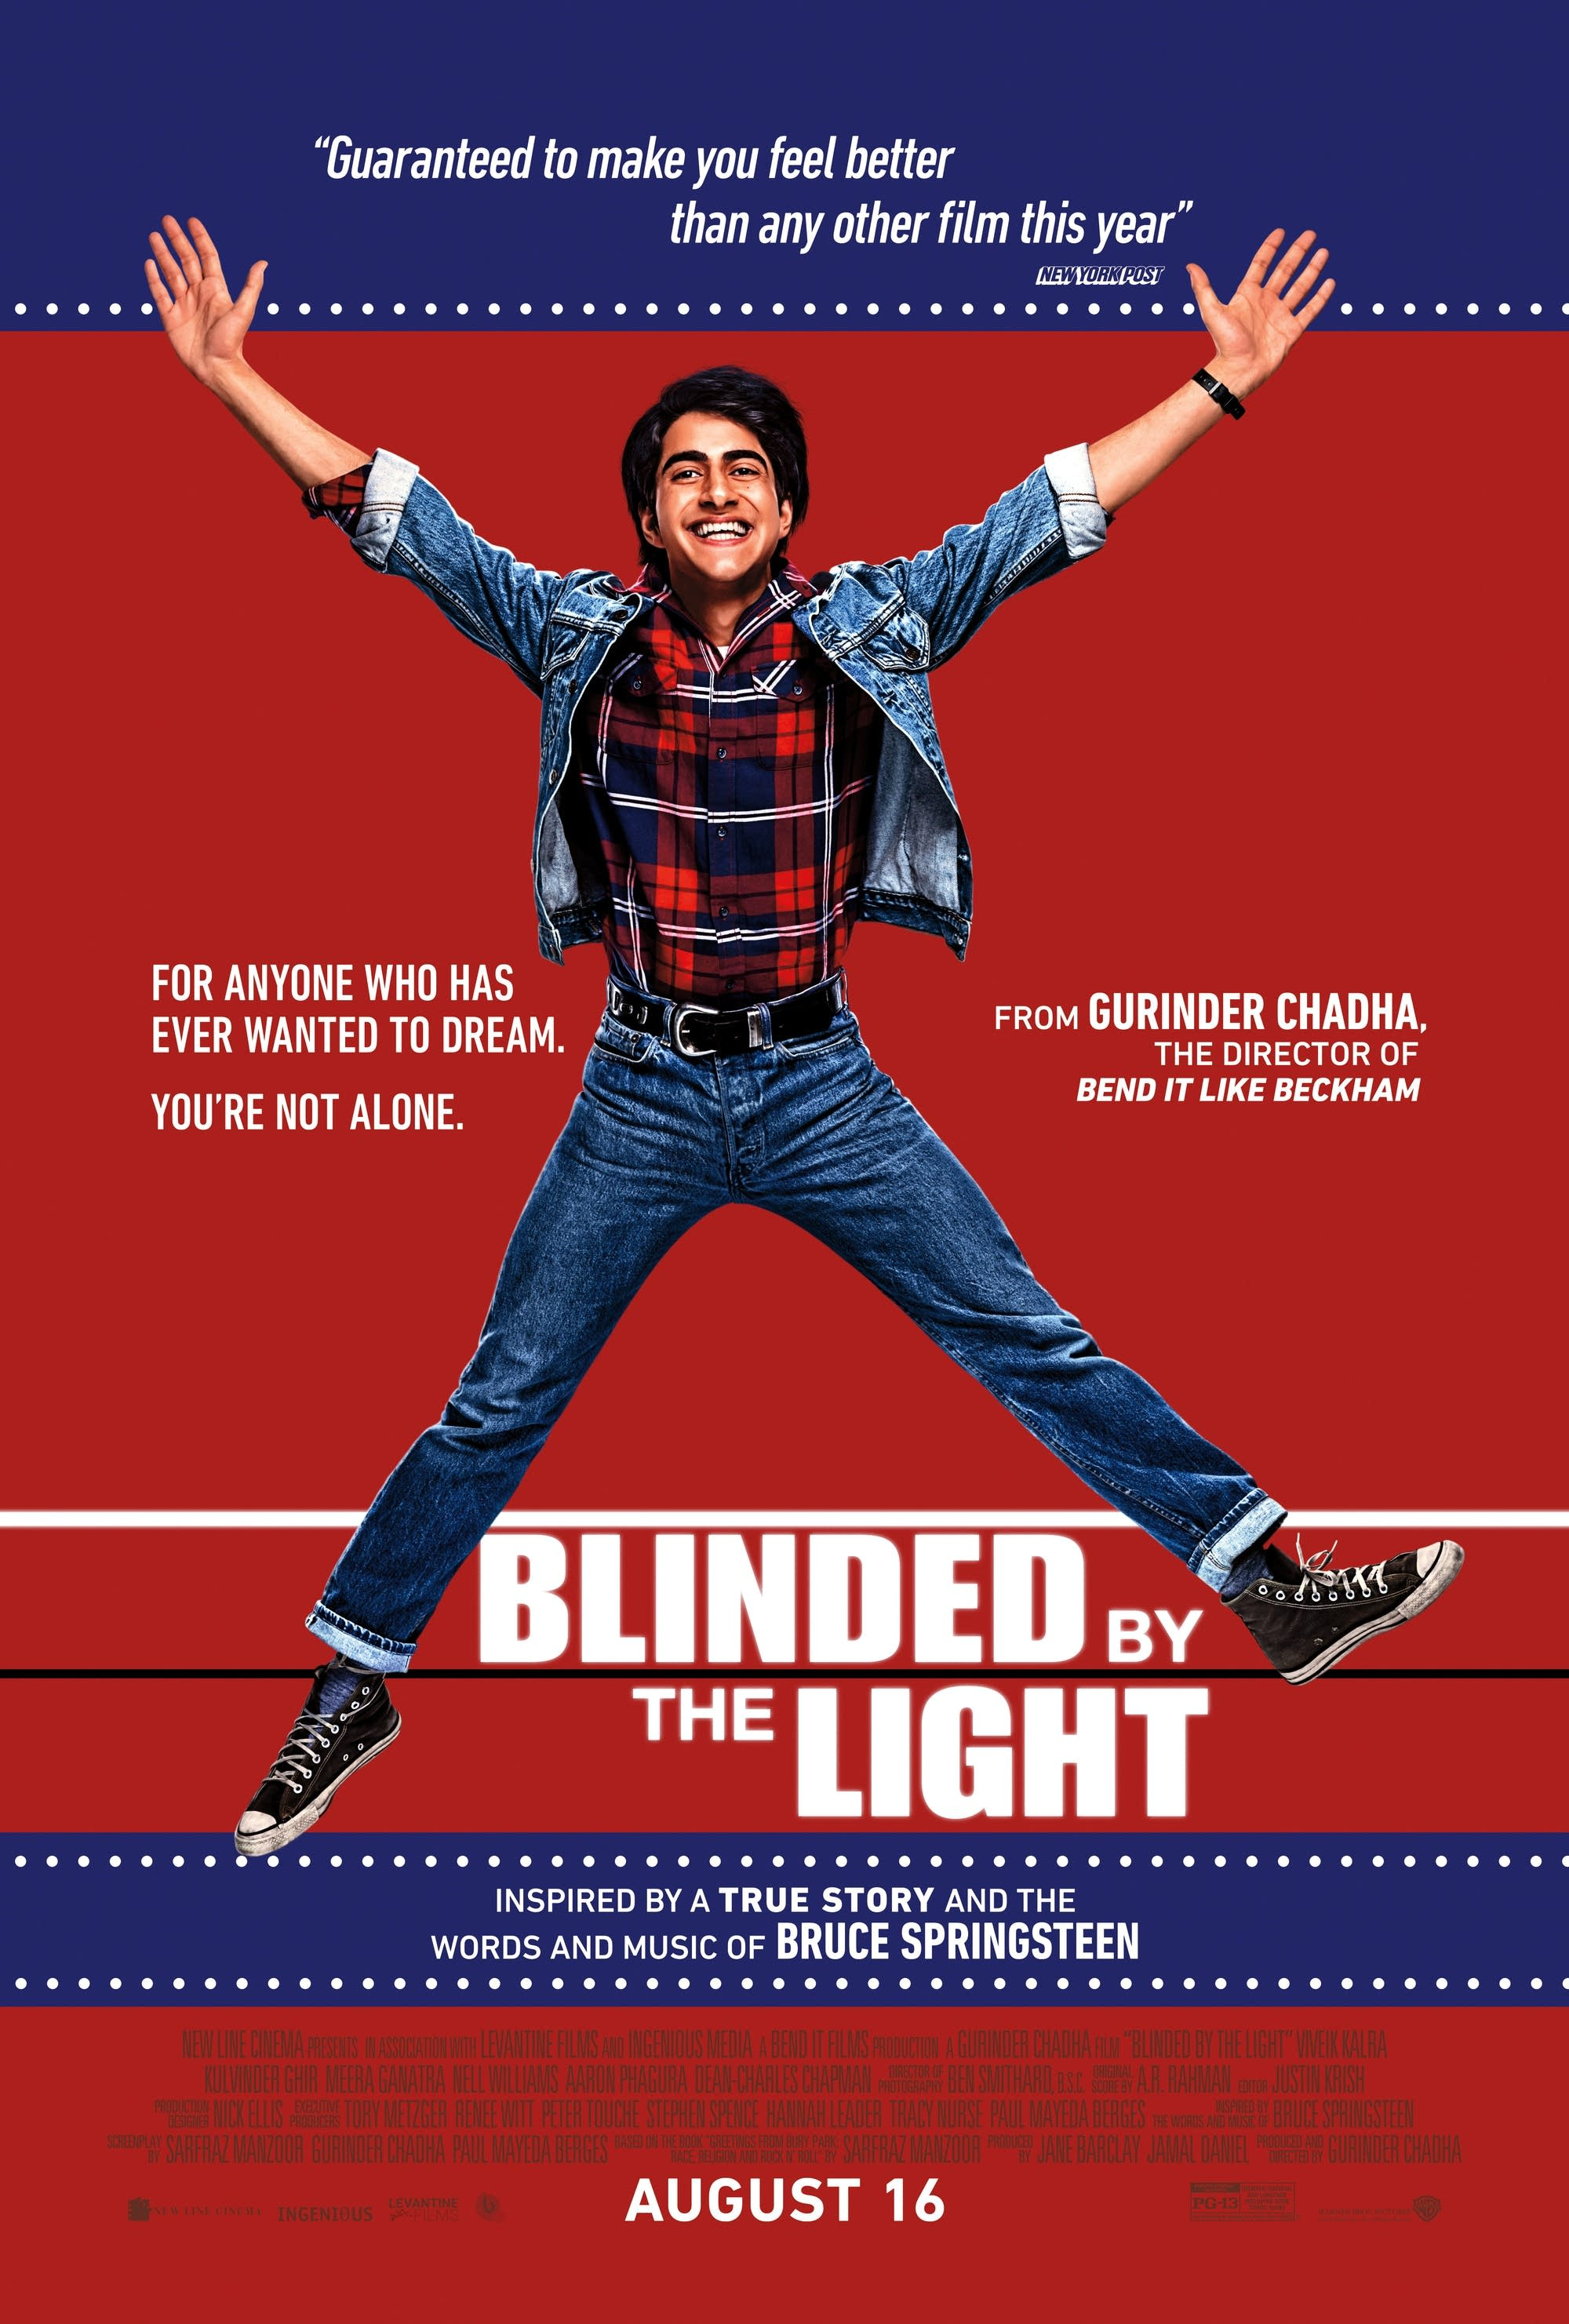 'Blinded by the Light' directed by Gurinder Chadha